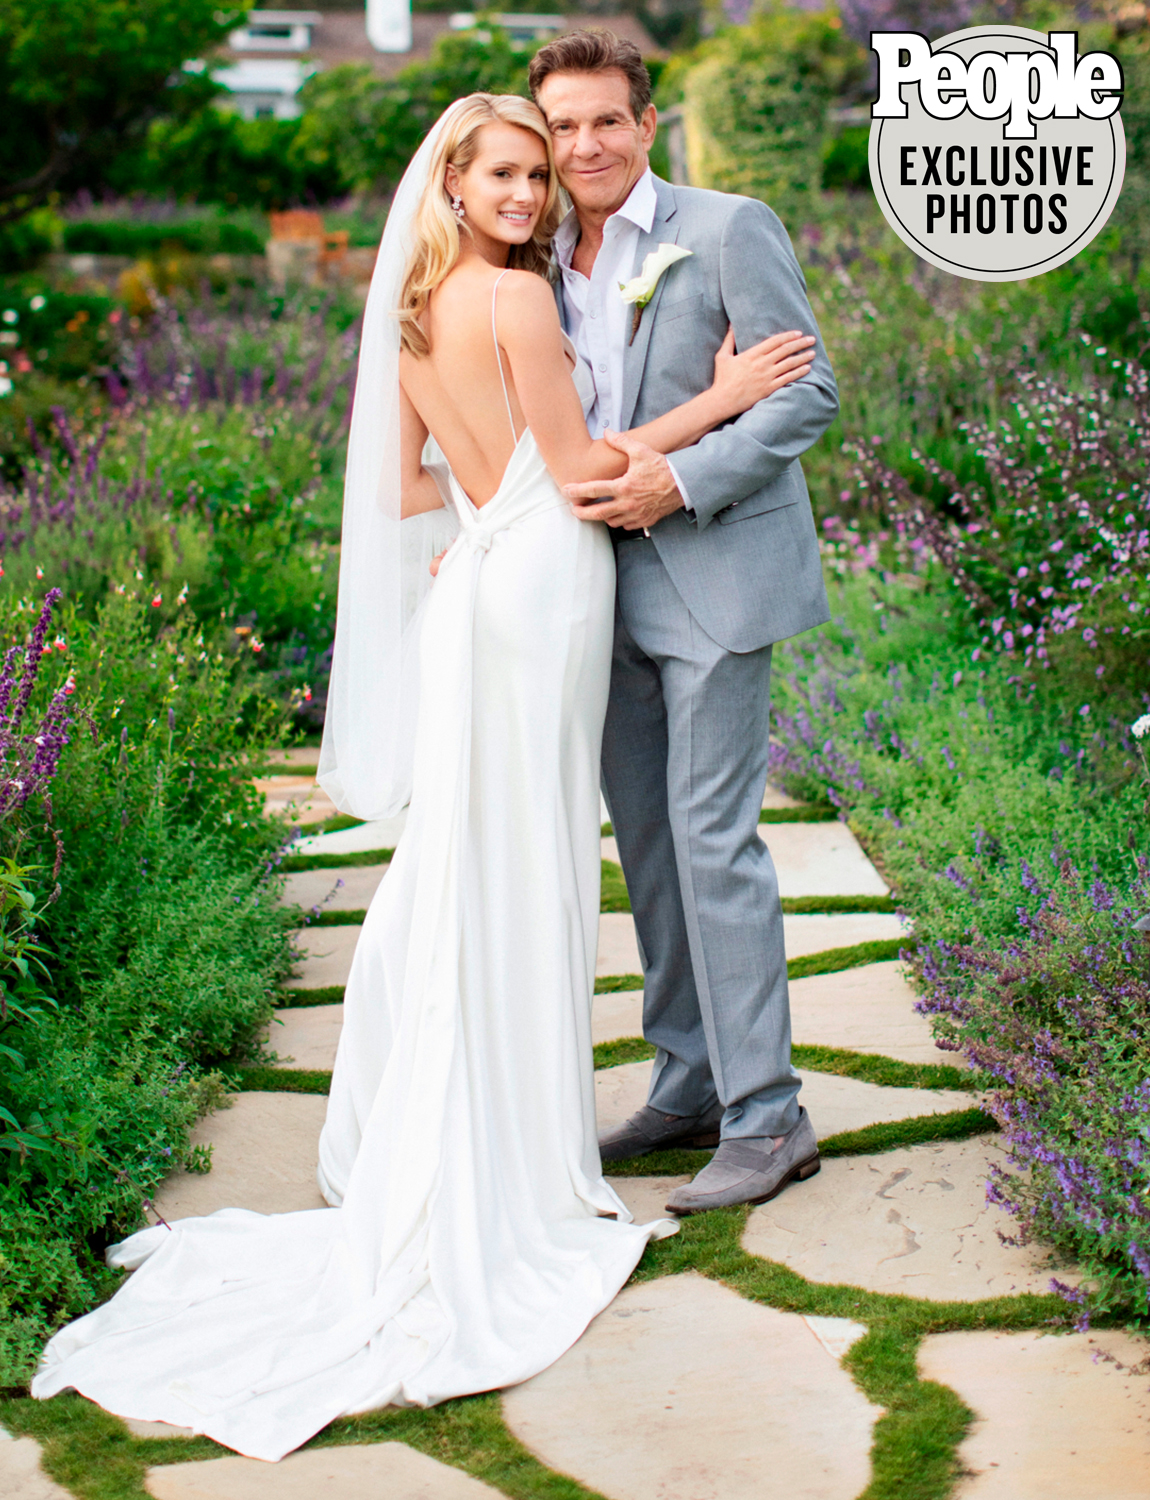 dennis quaid and laura savoie wedding